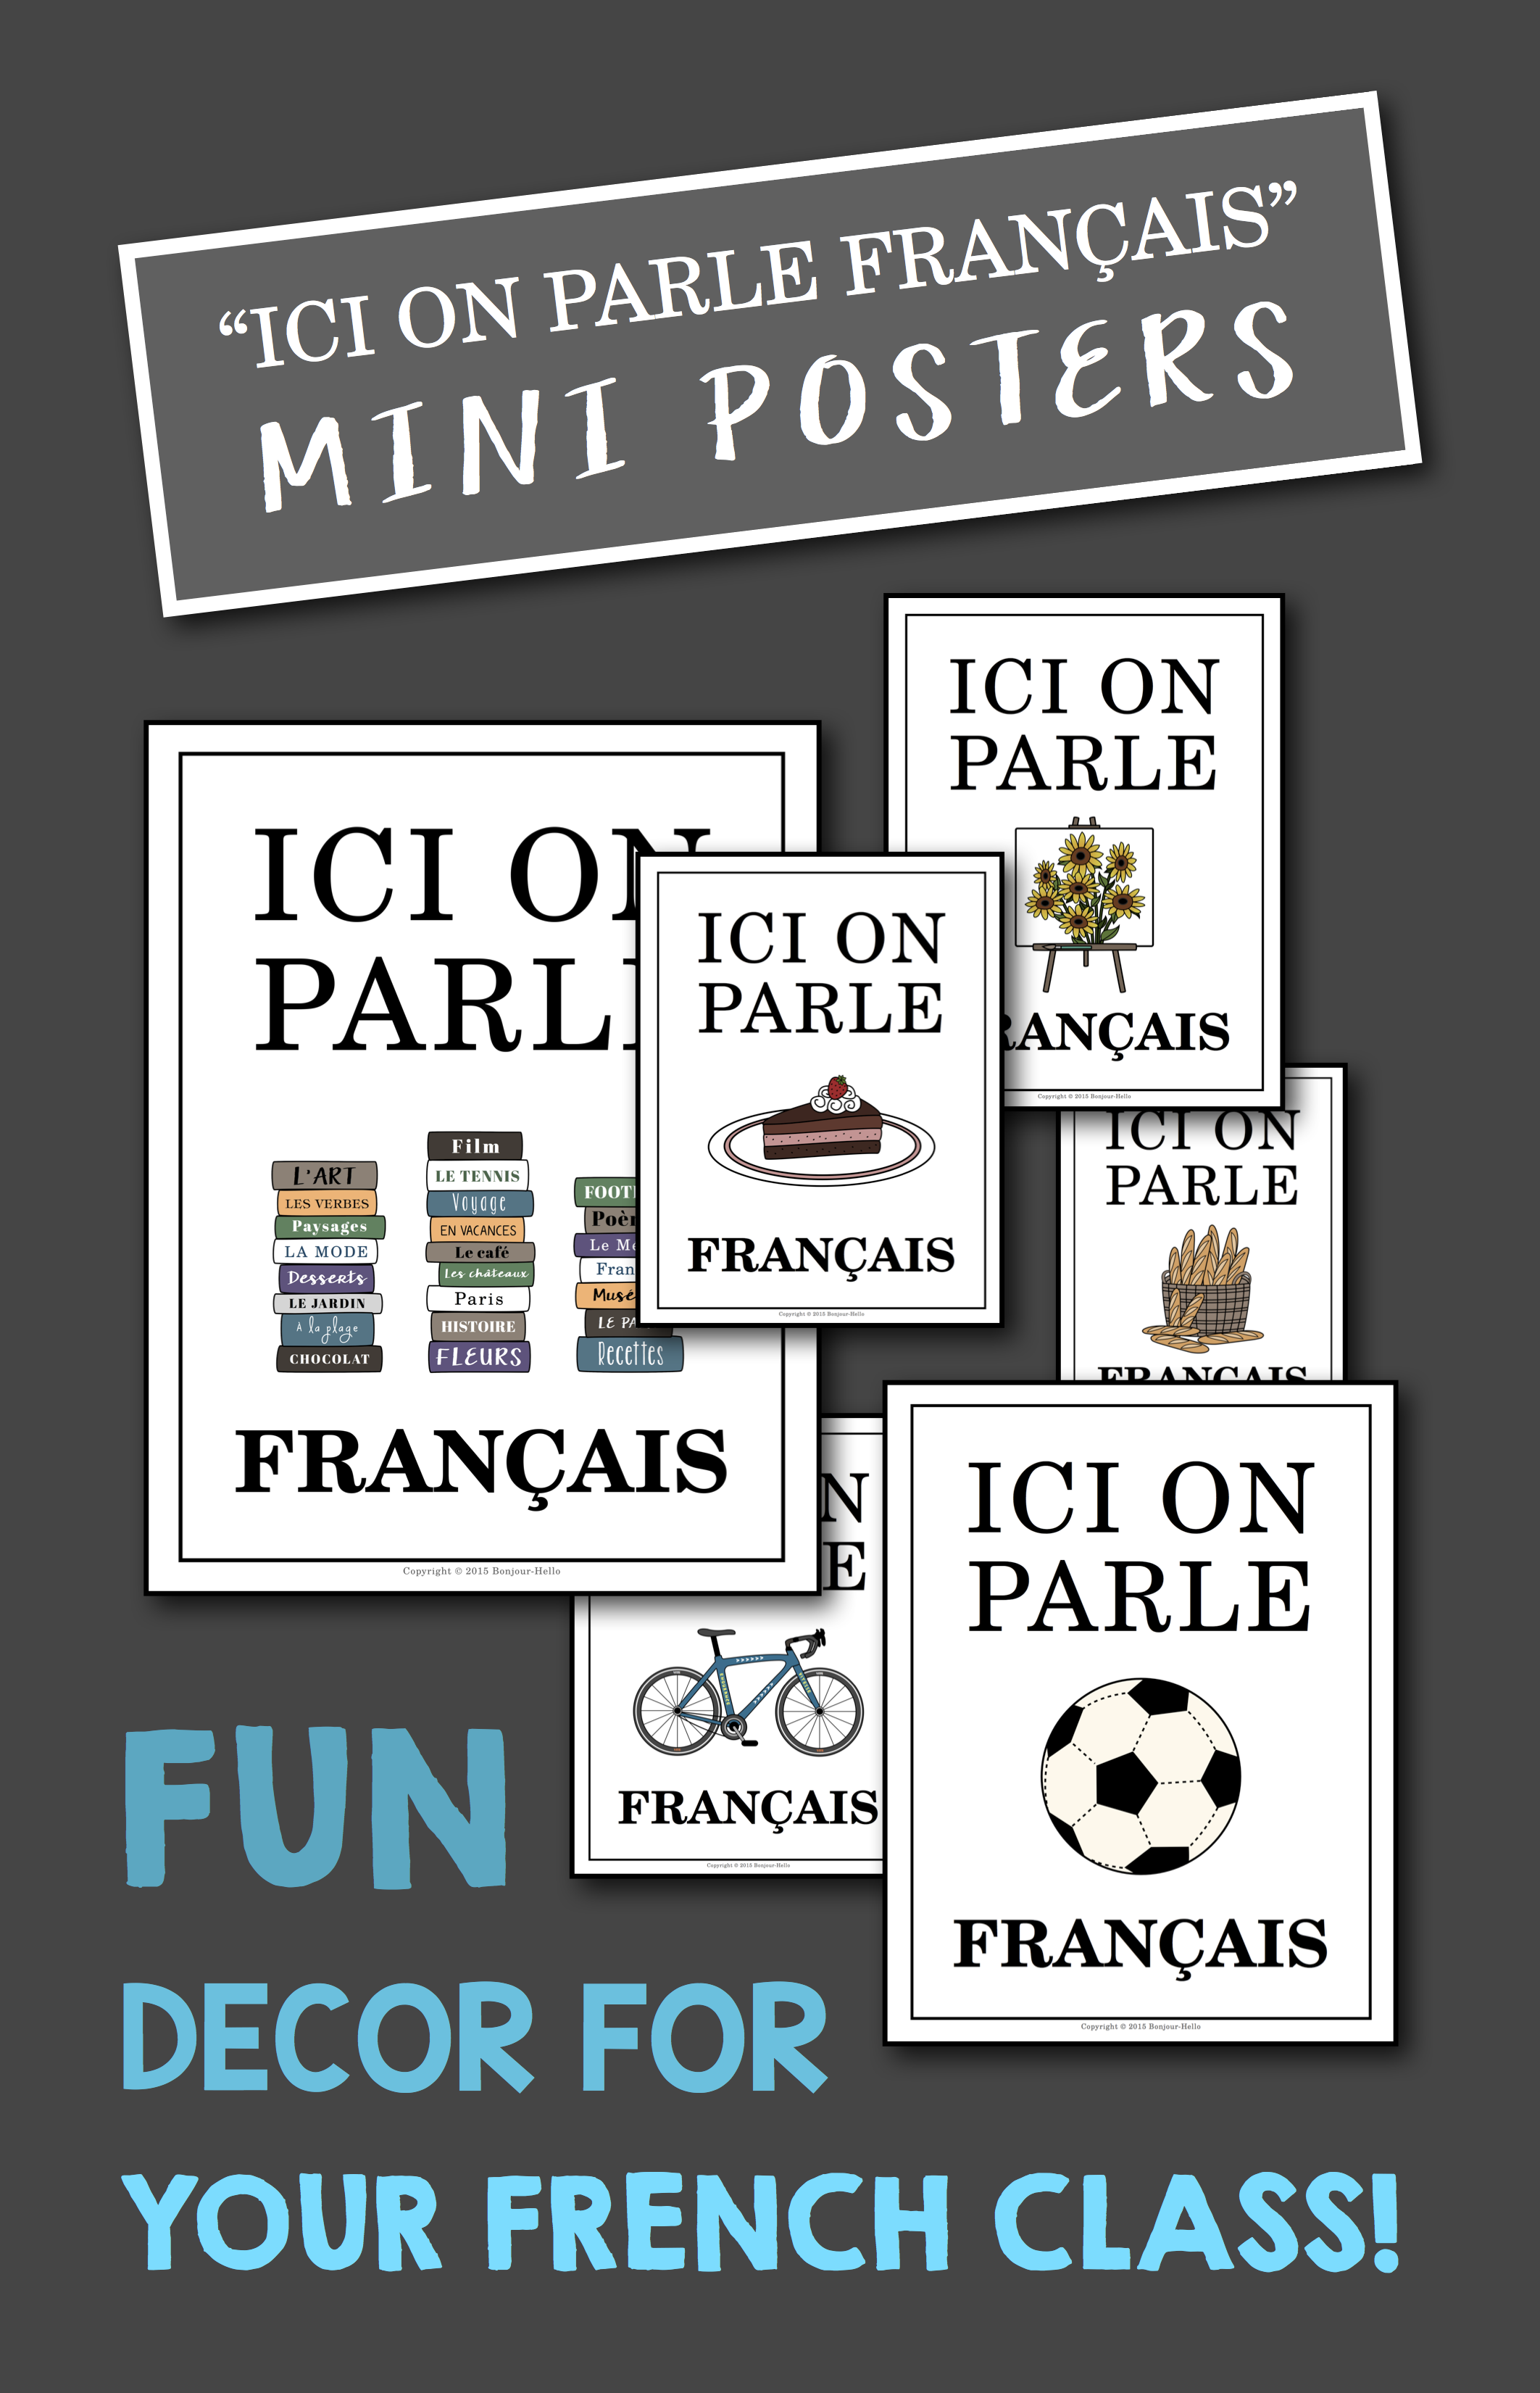 Ici On Parle Francais Mini Posters For French Class